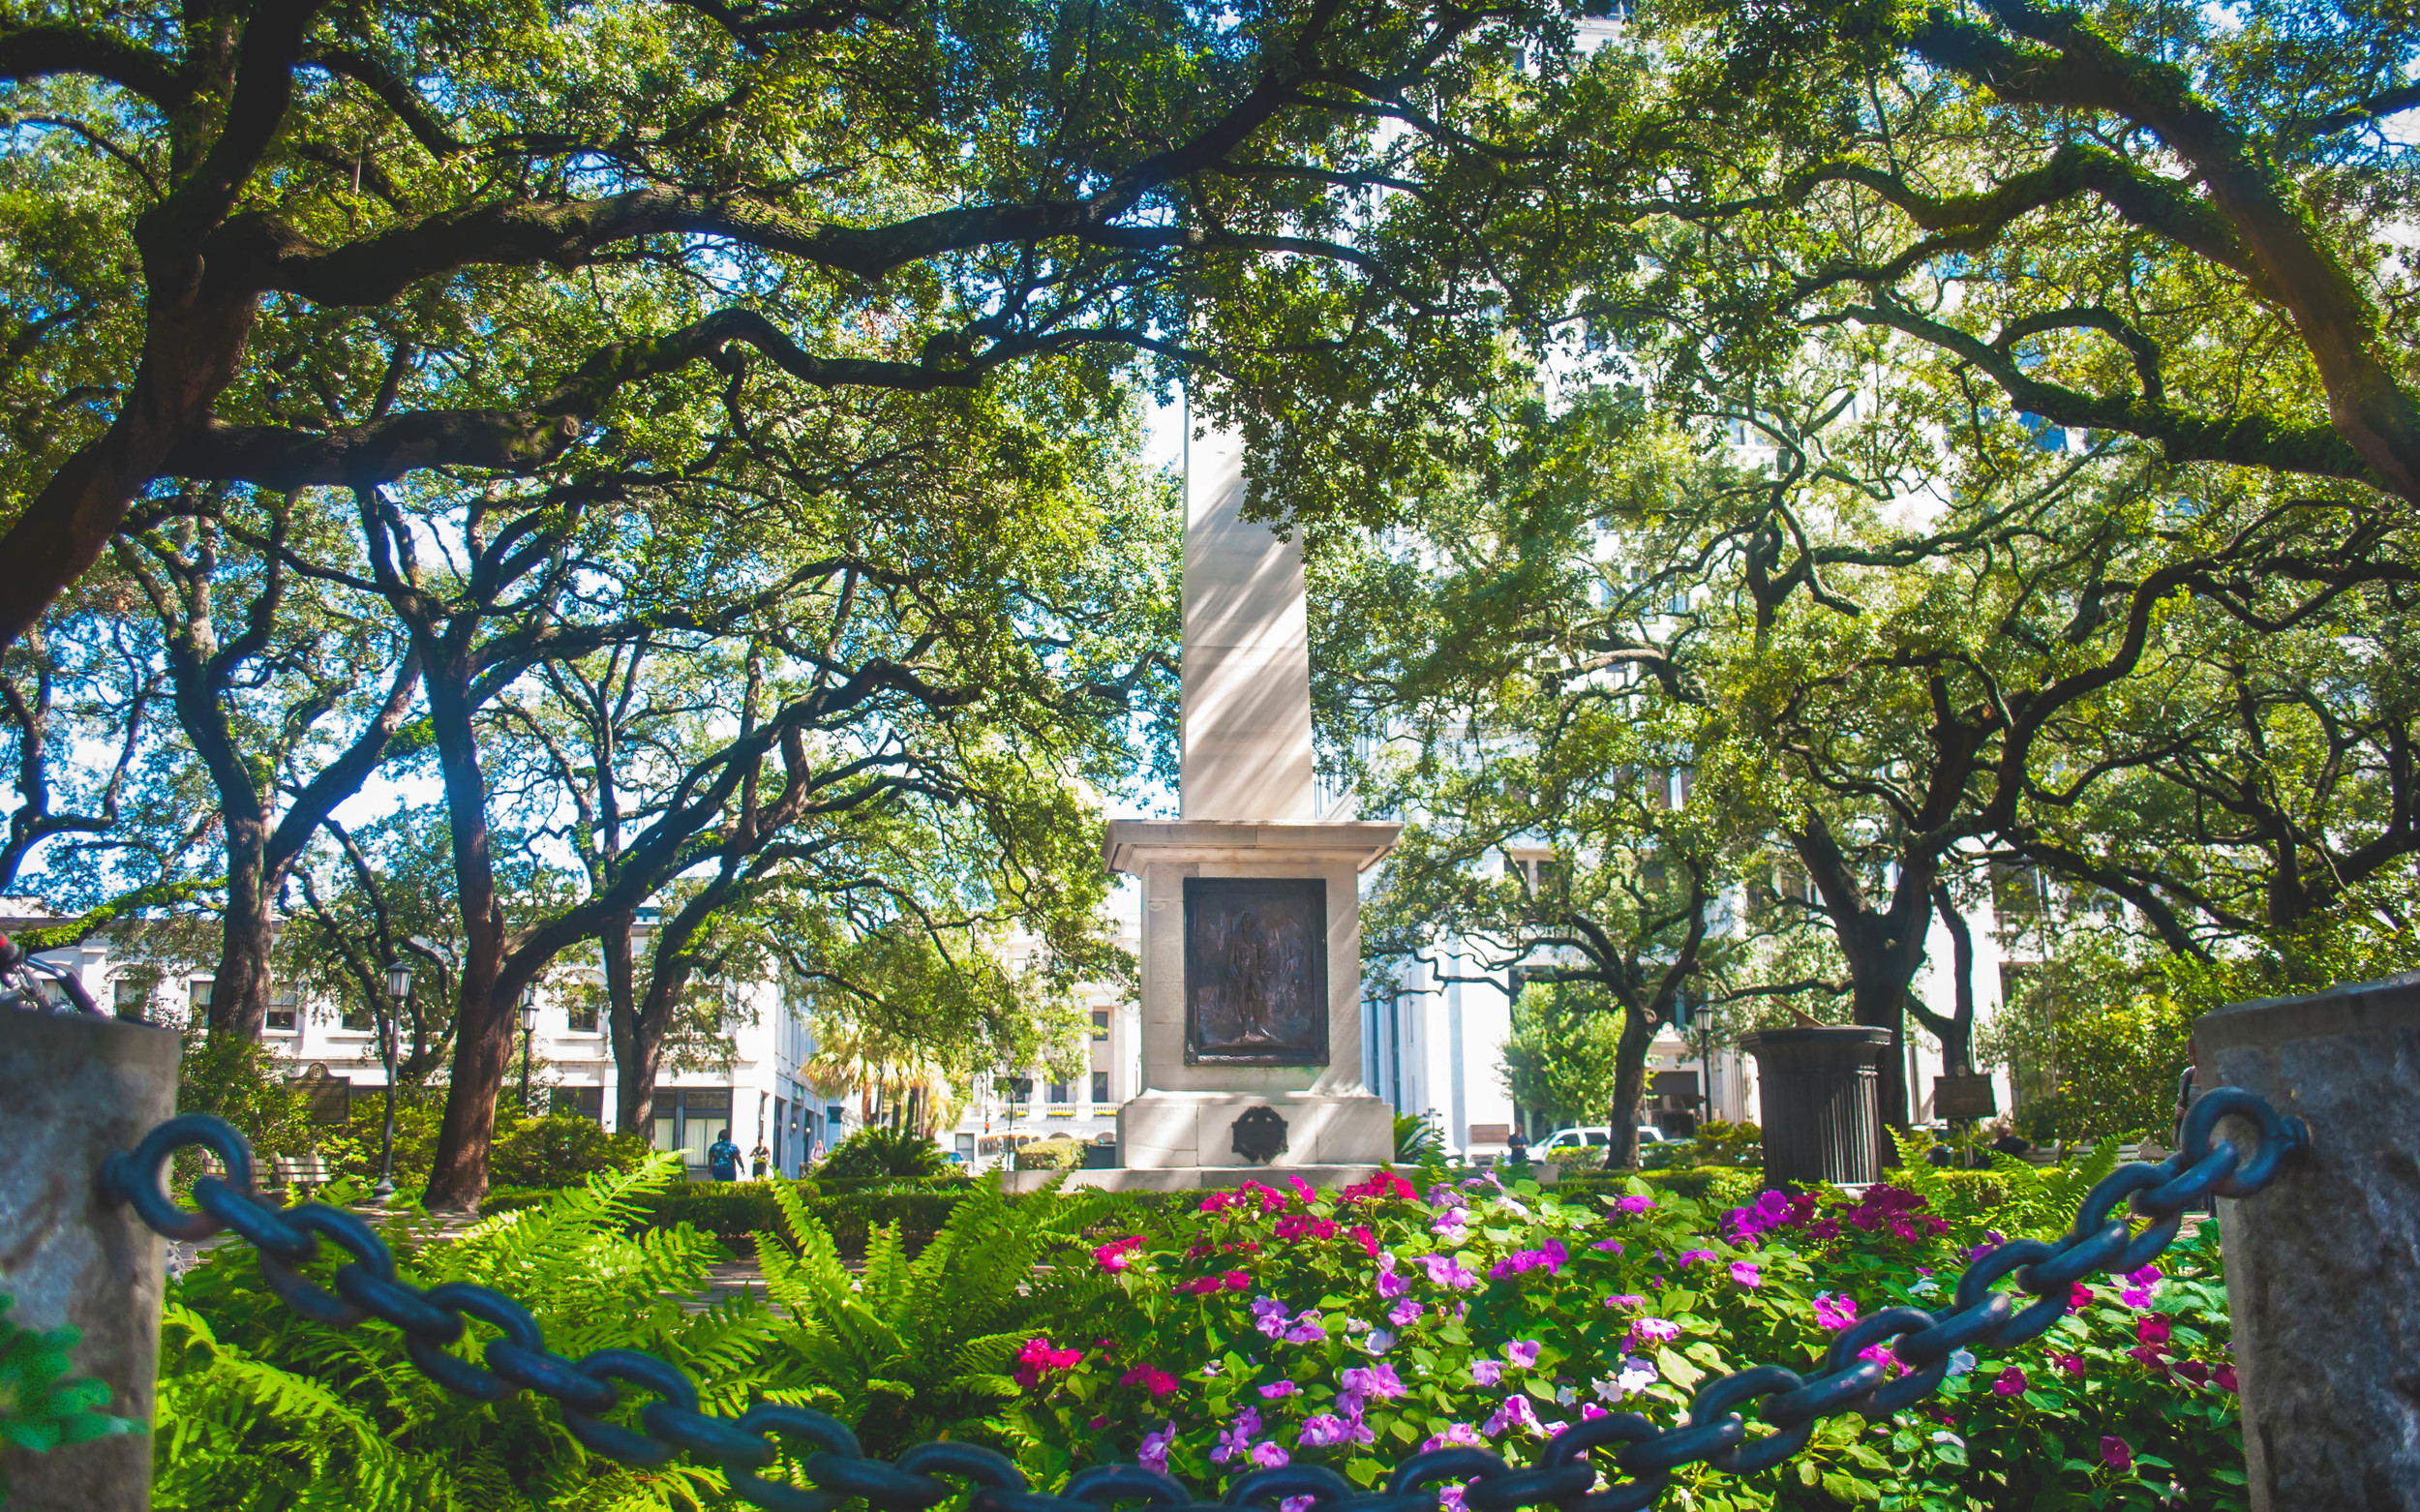 ©2012Capturing Savannah-PhotographyTours-JohnsonSquare.jpg